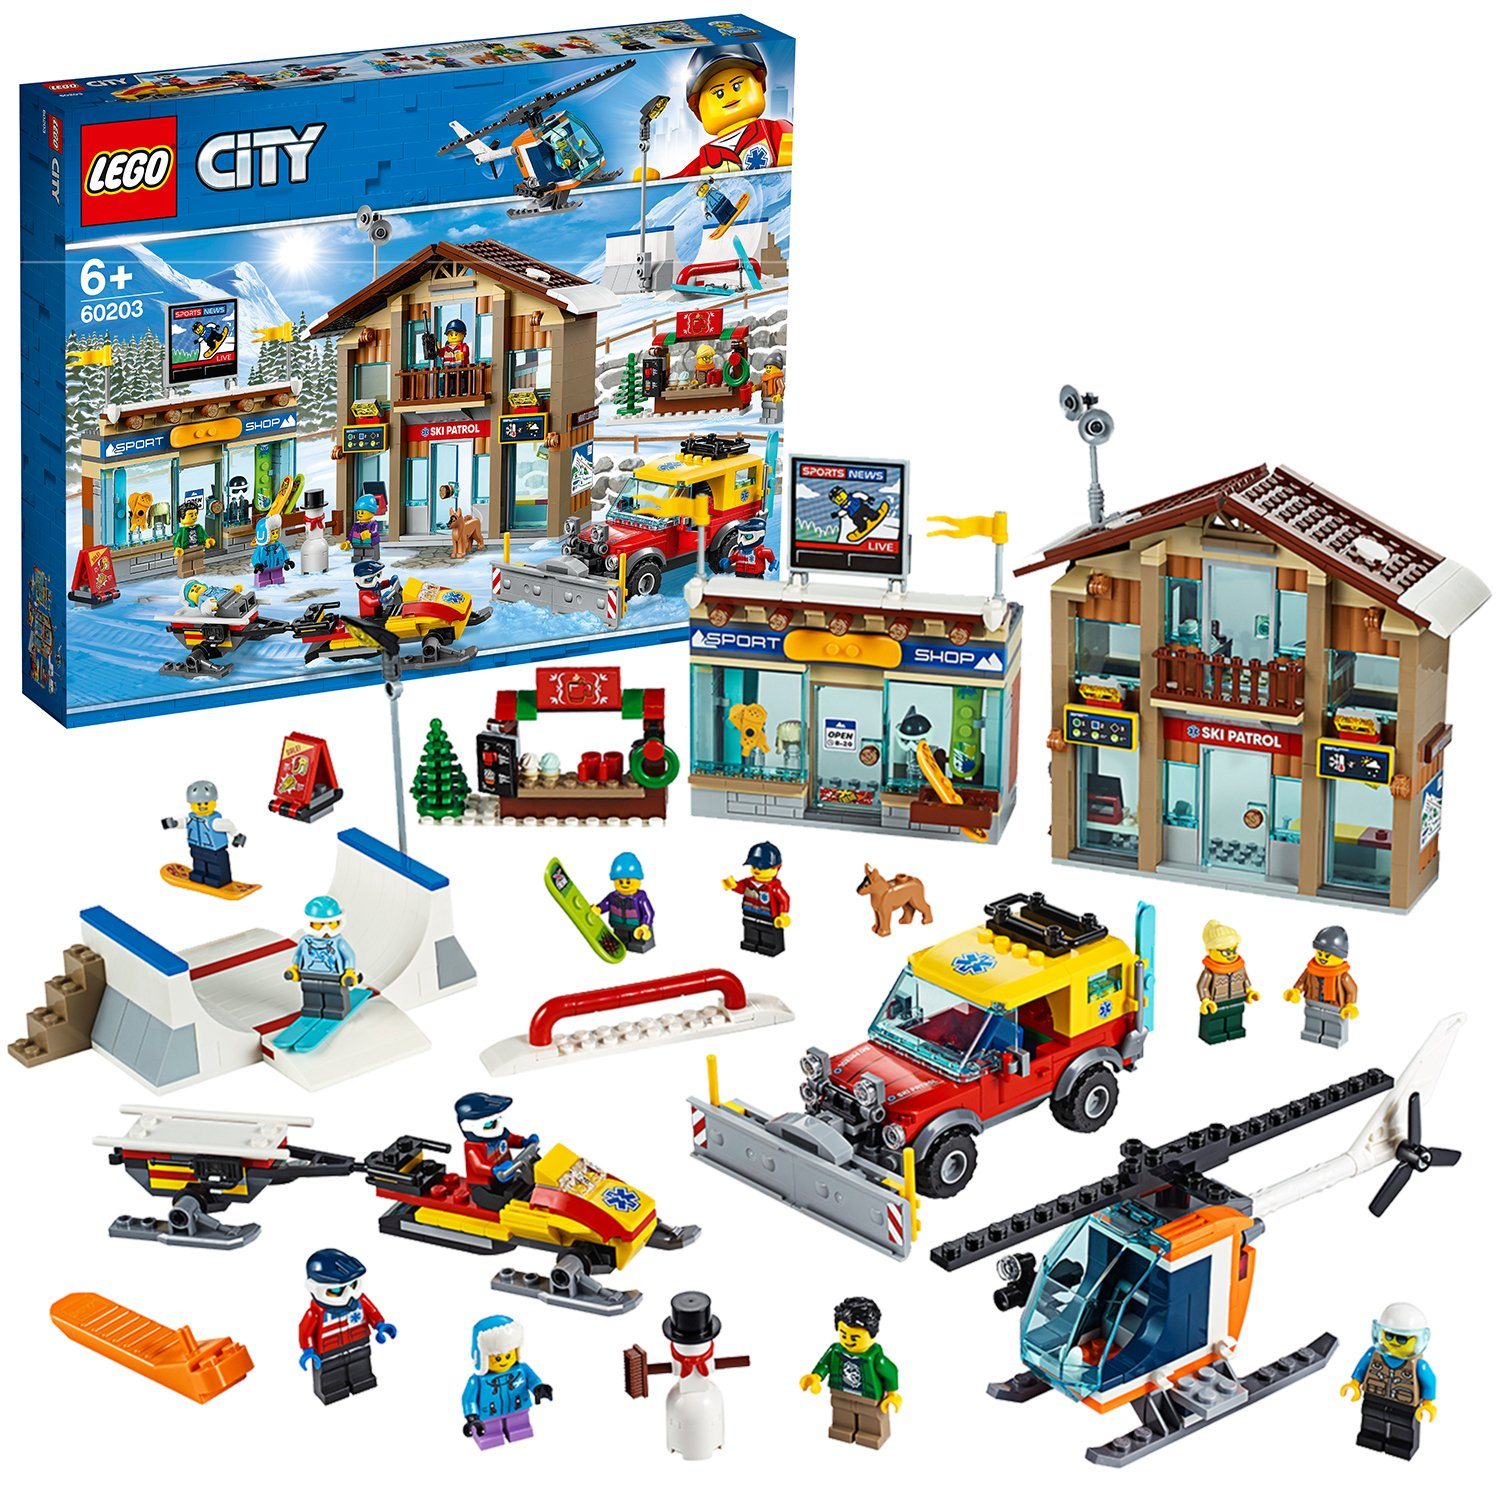 LEGO City Extra Town 2019 Playset - 60203